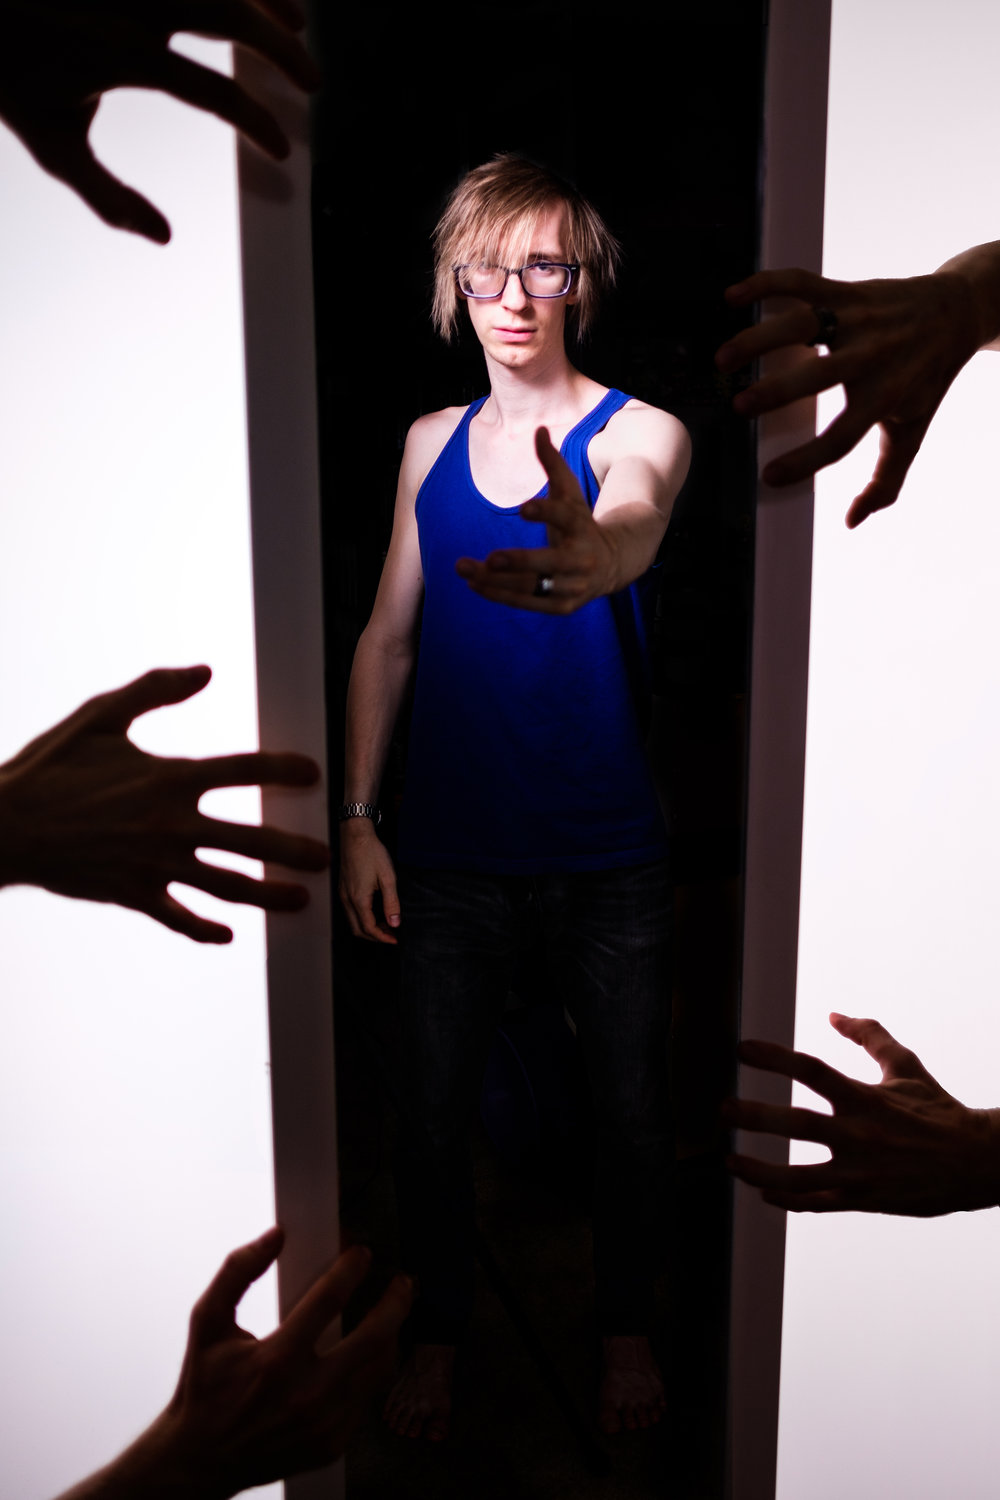 Conceptual Portrait Dark Art Horror Write Lighting.jpg